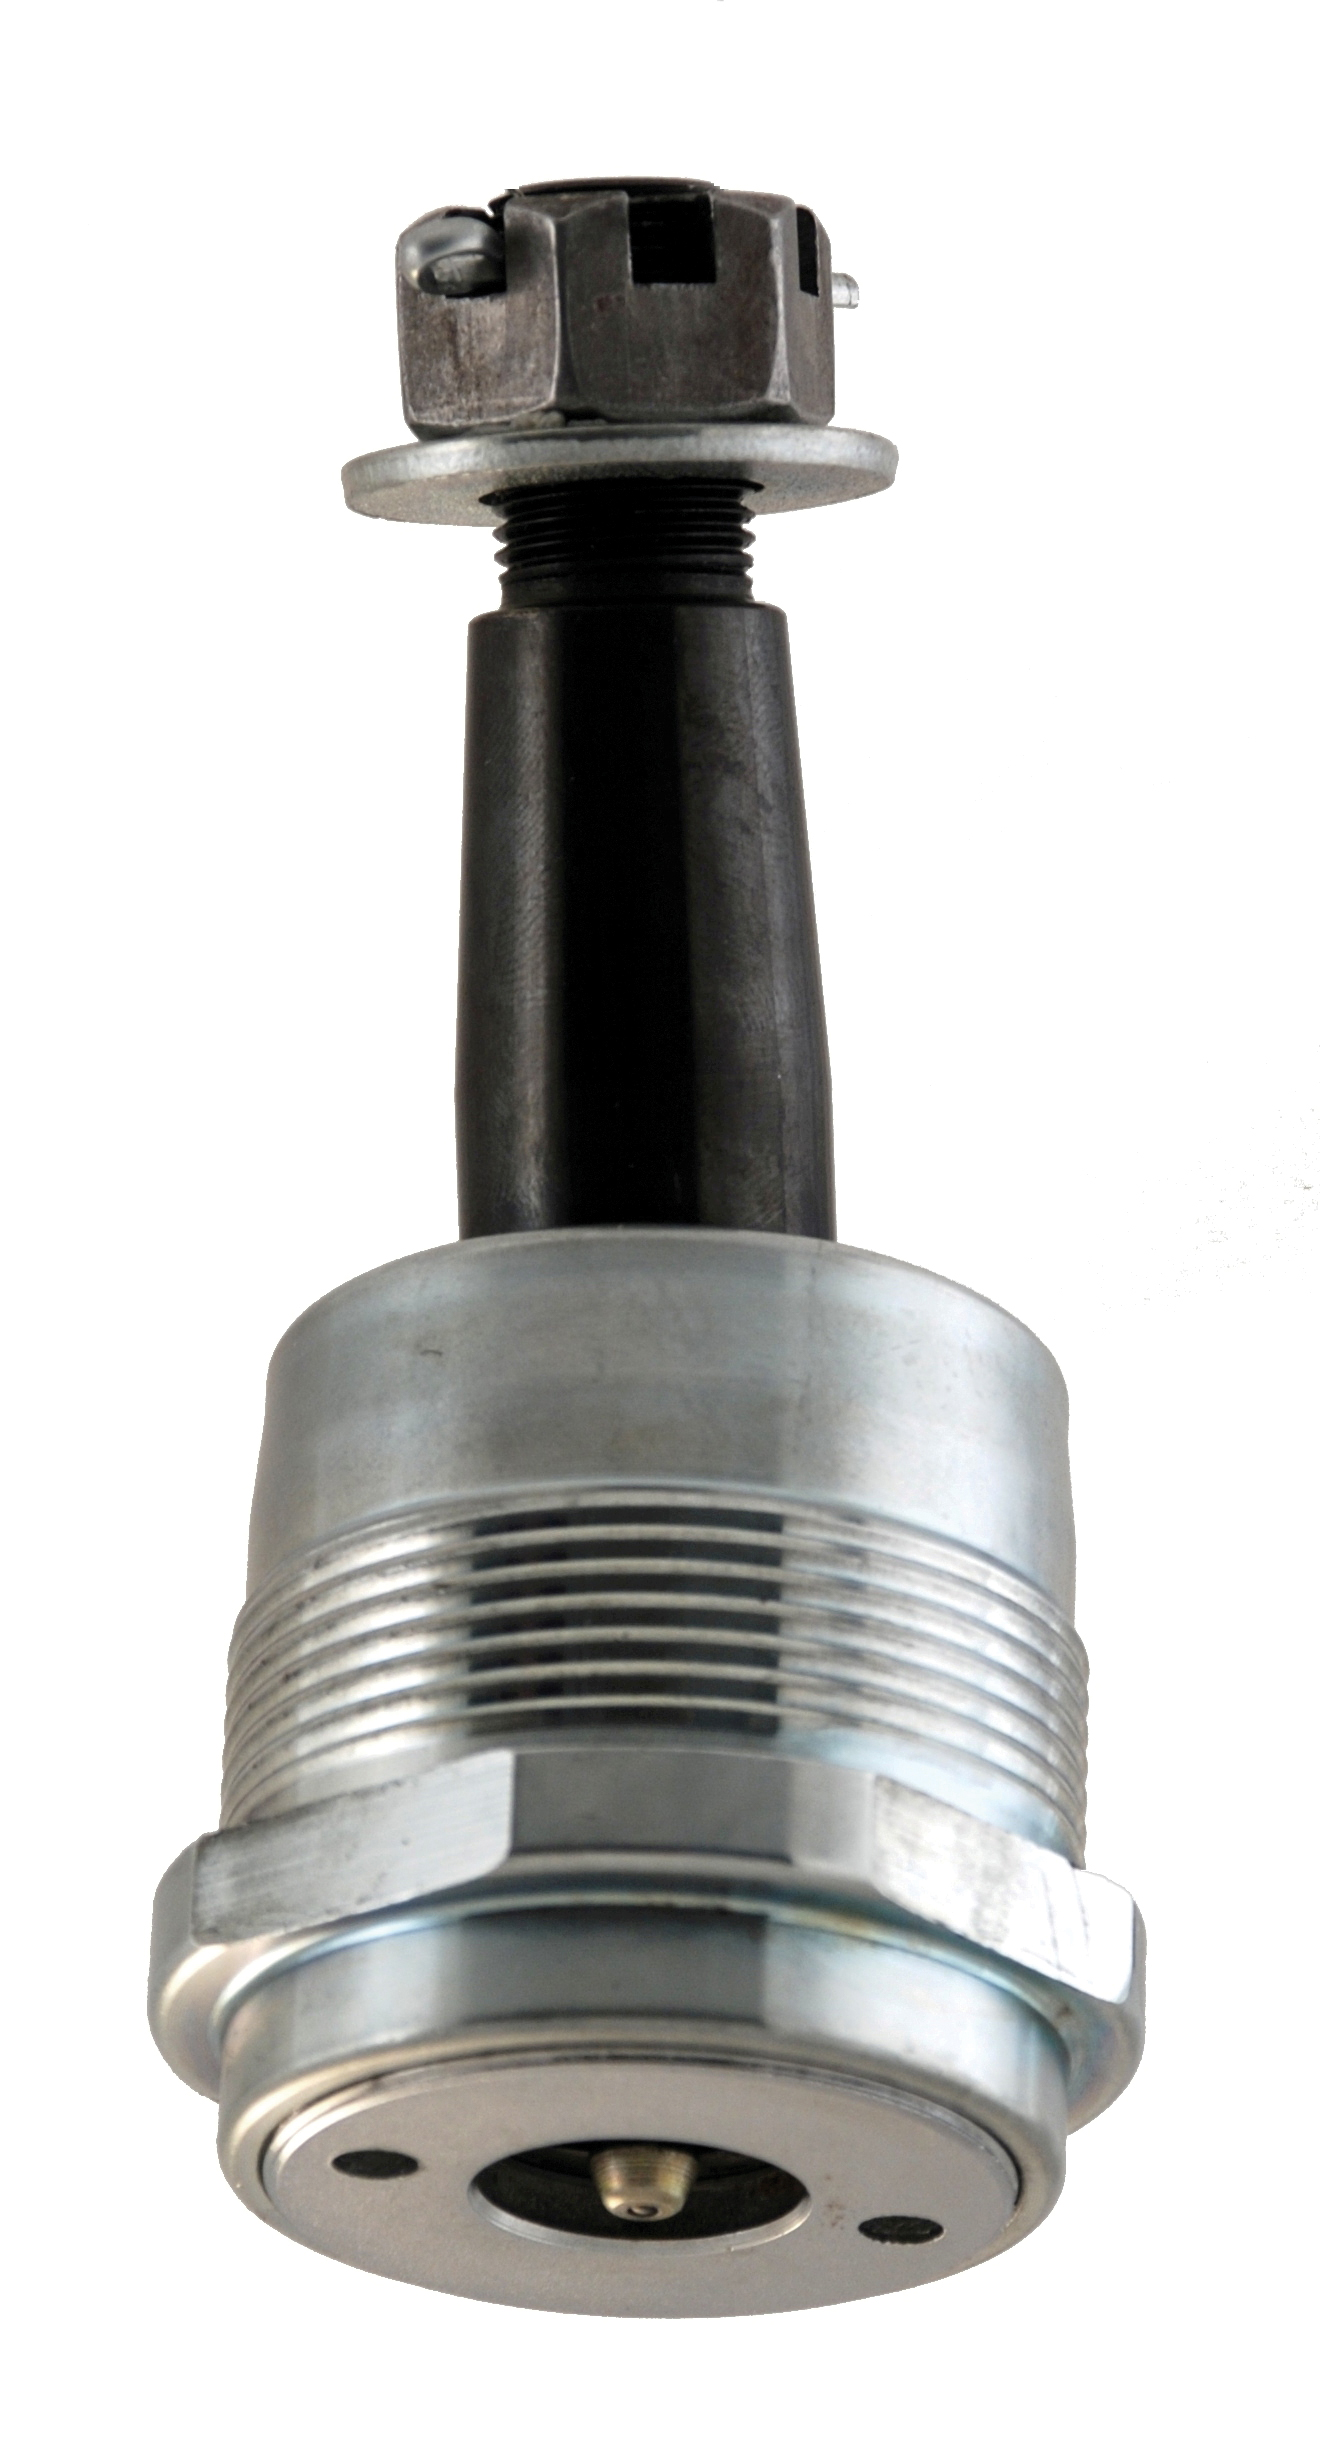 QA1 Screw-In Ball Joint Housing ONLY - (1210102)